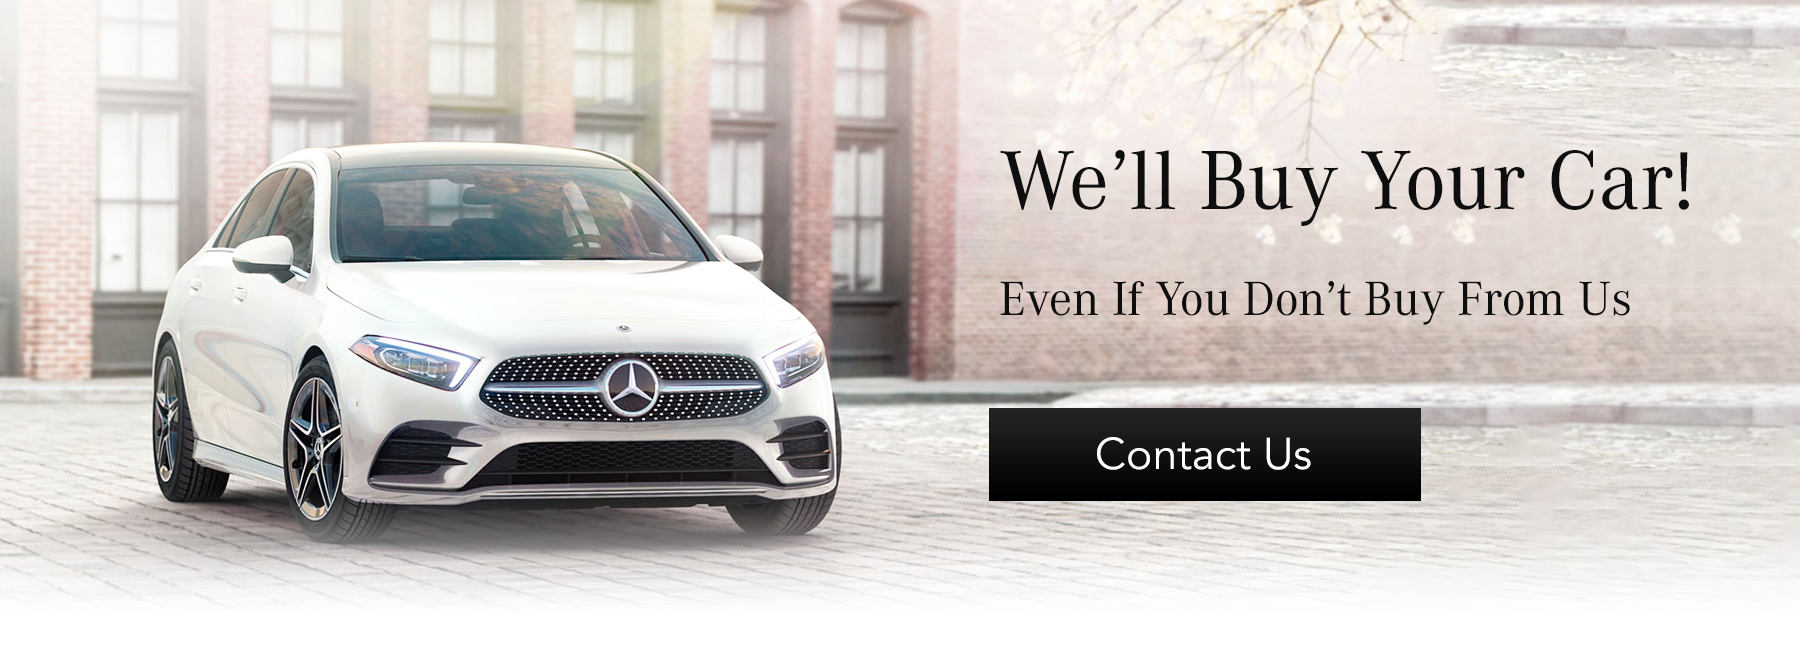 EMB_HP_we will buy your car